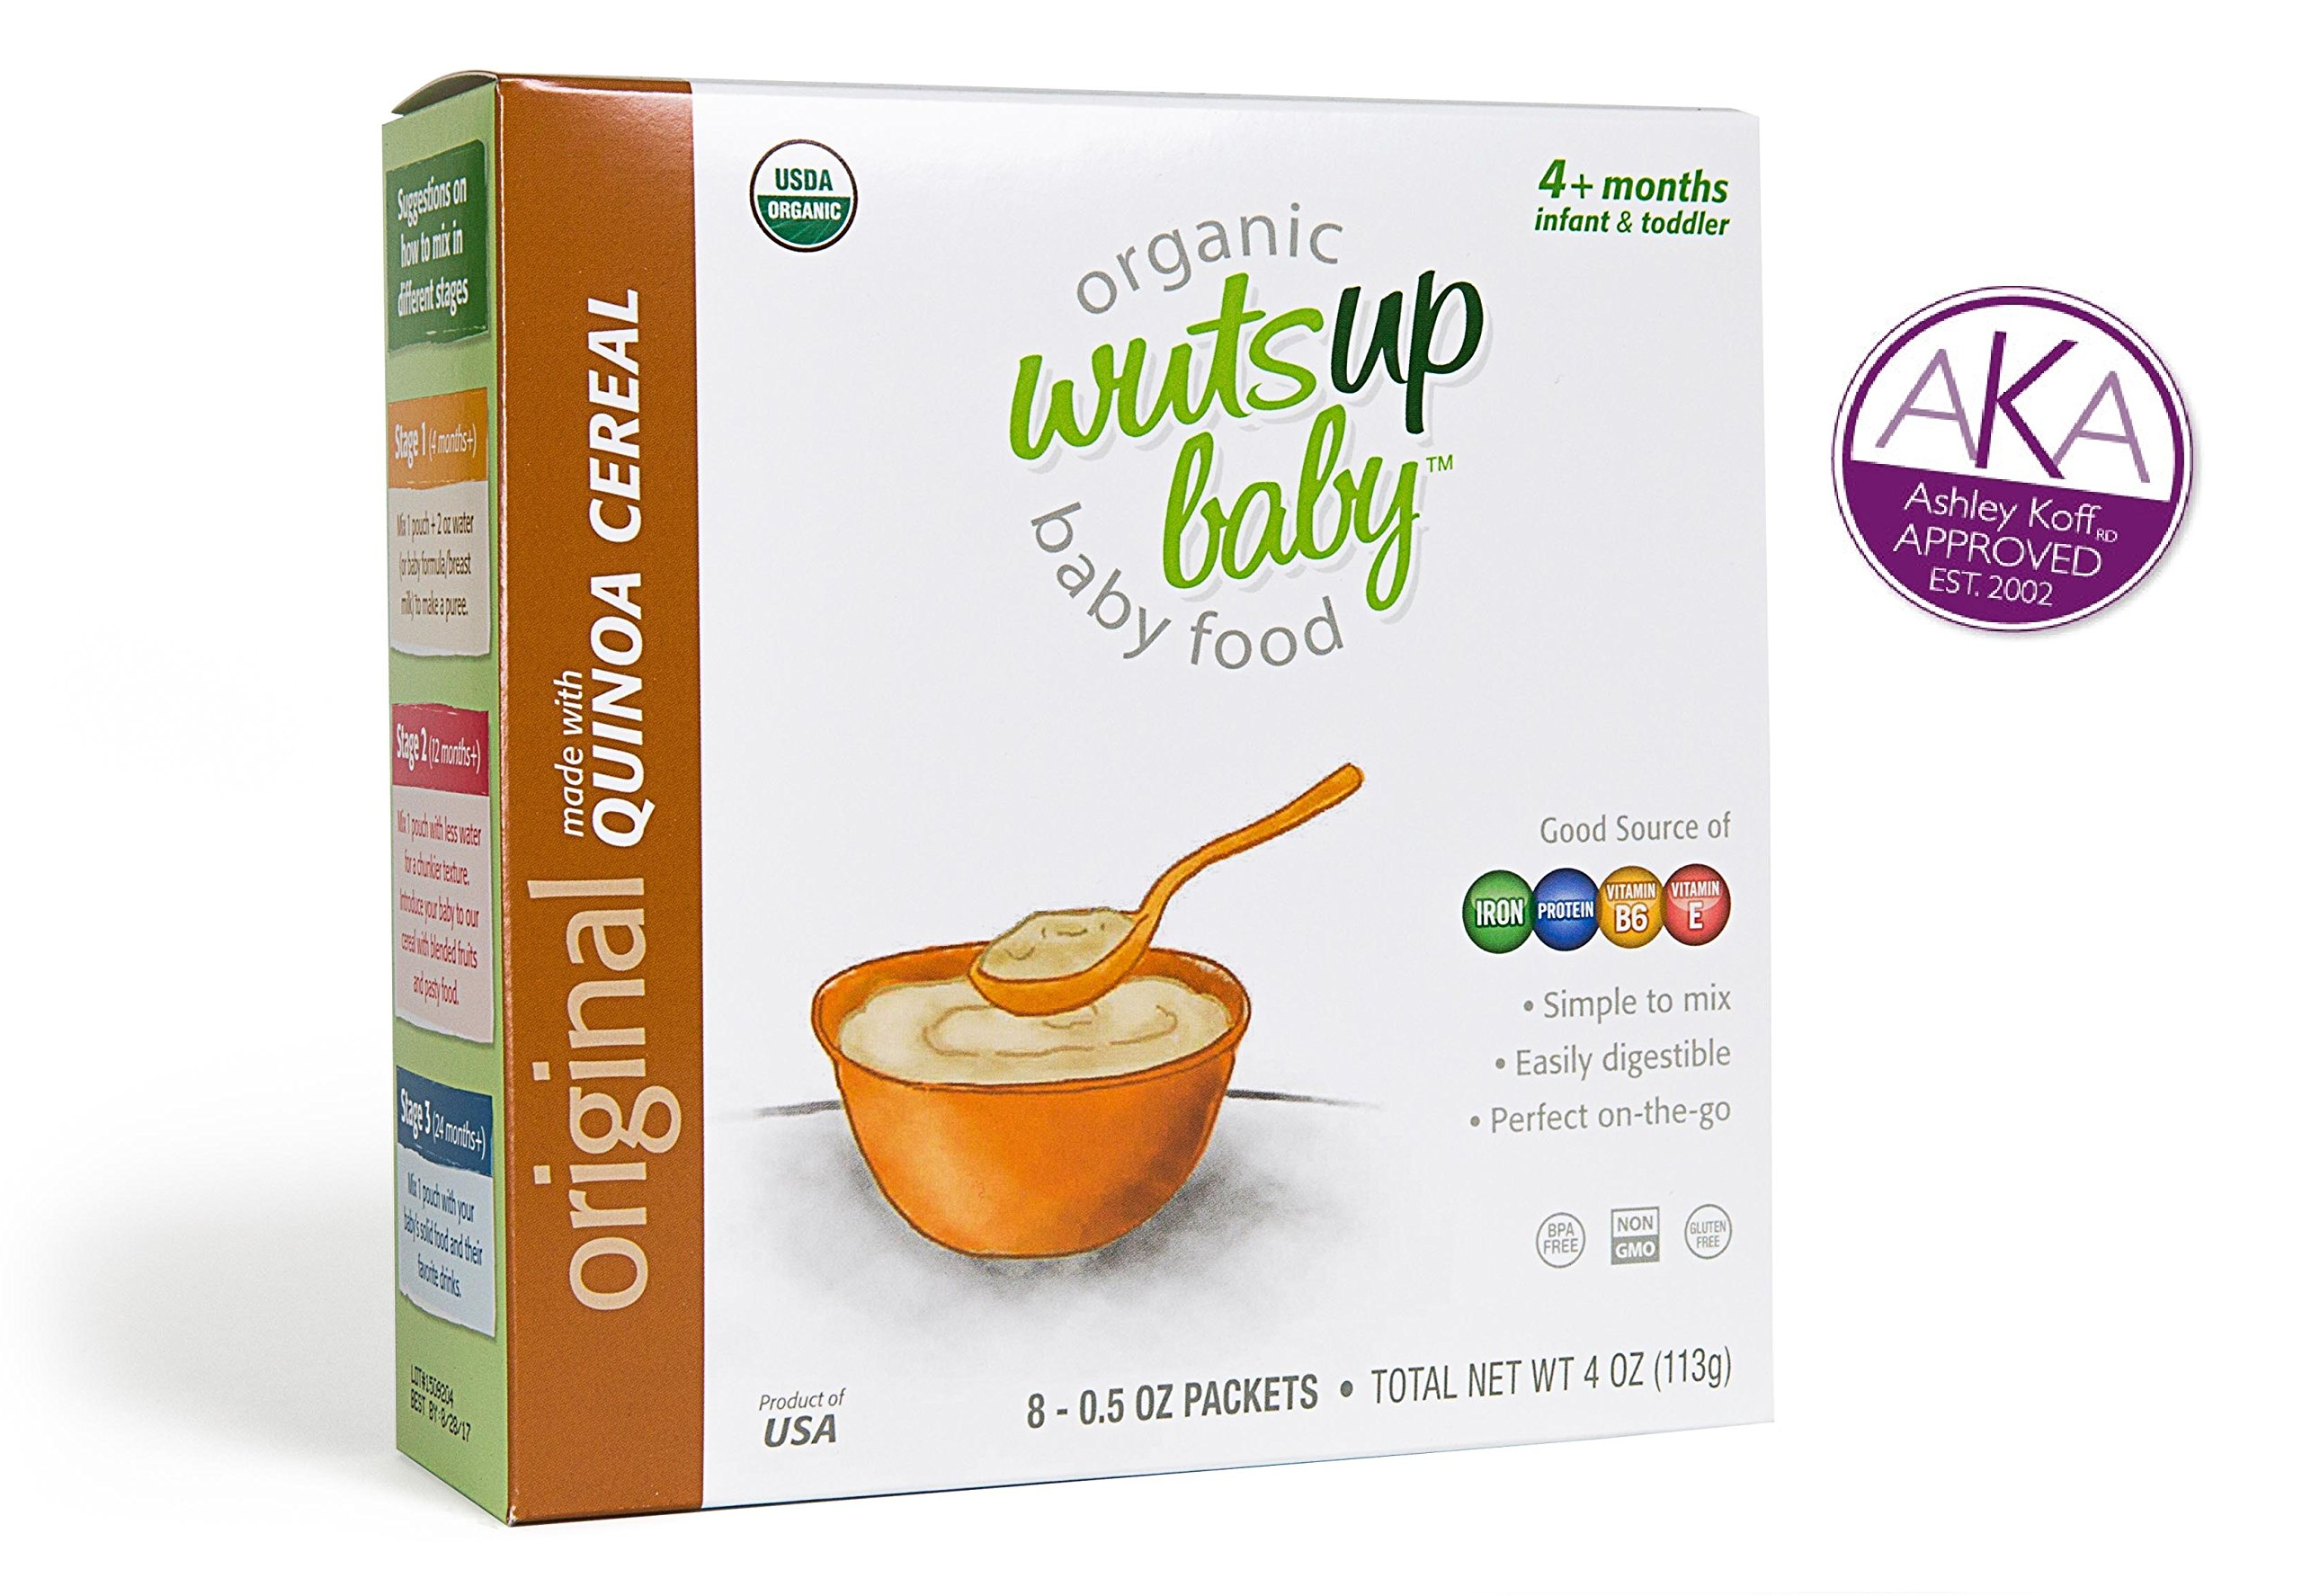 8x Organic Original Quinoa Infant & Baby Cereal Travel Packs w/ Naturally Occurring Omega 3, 6, 9 Protein, Iron, Magnesium, B2. Easiest First Foods to Digest. By WutsupBaby – 4oz (8 pack x 0.5oz)